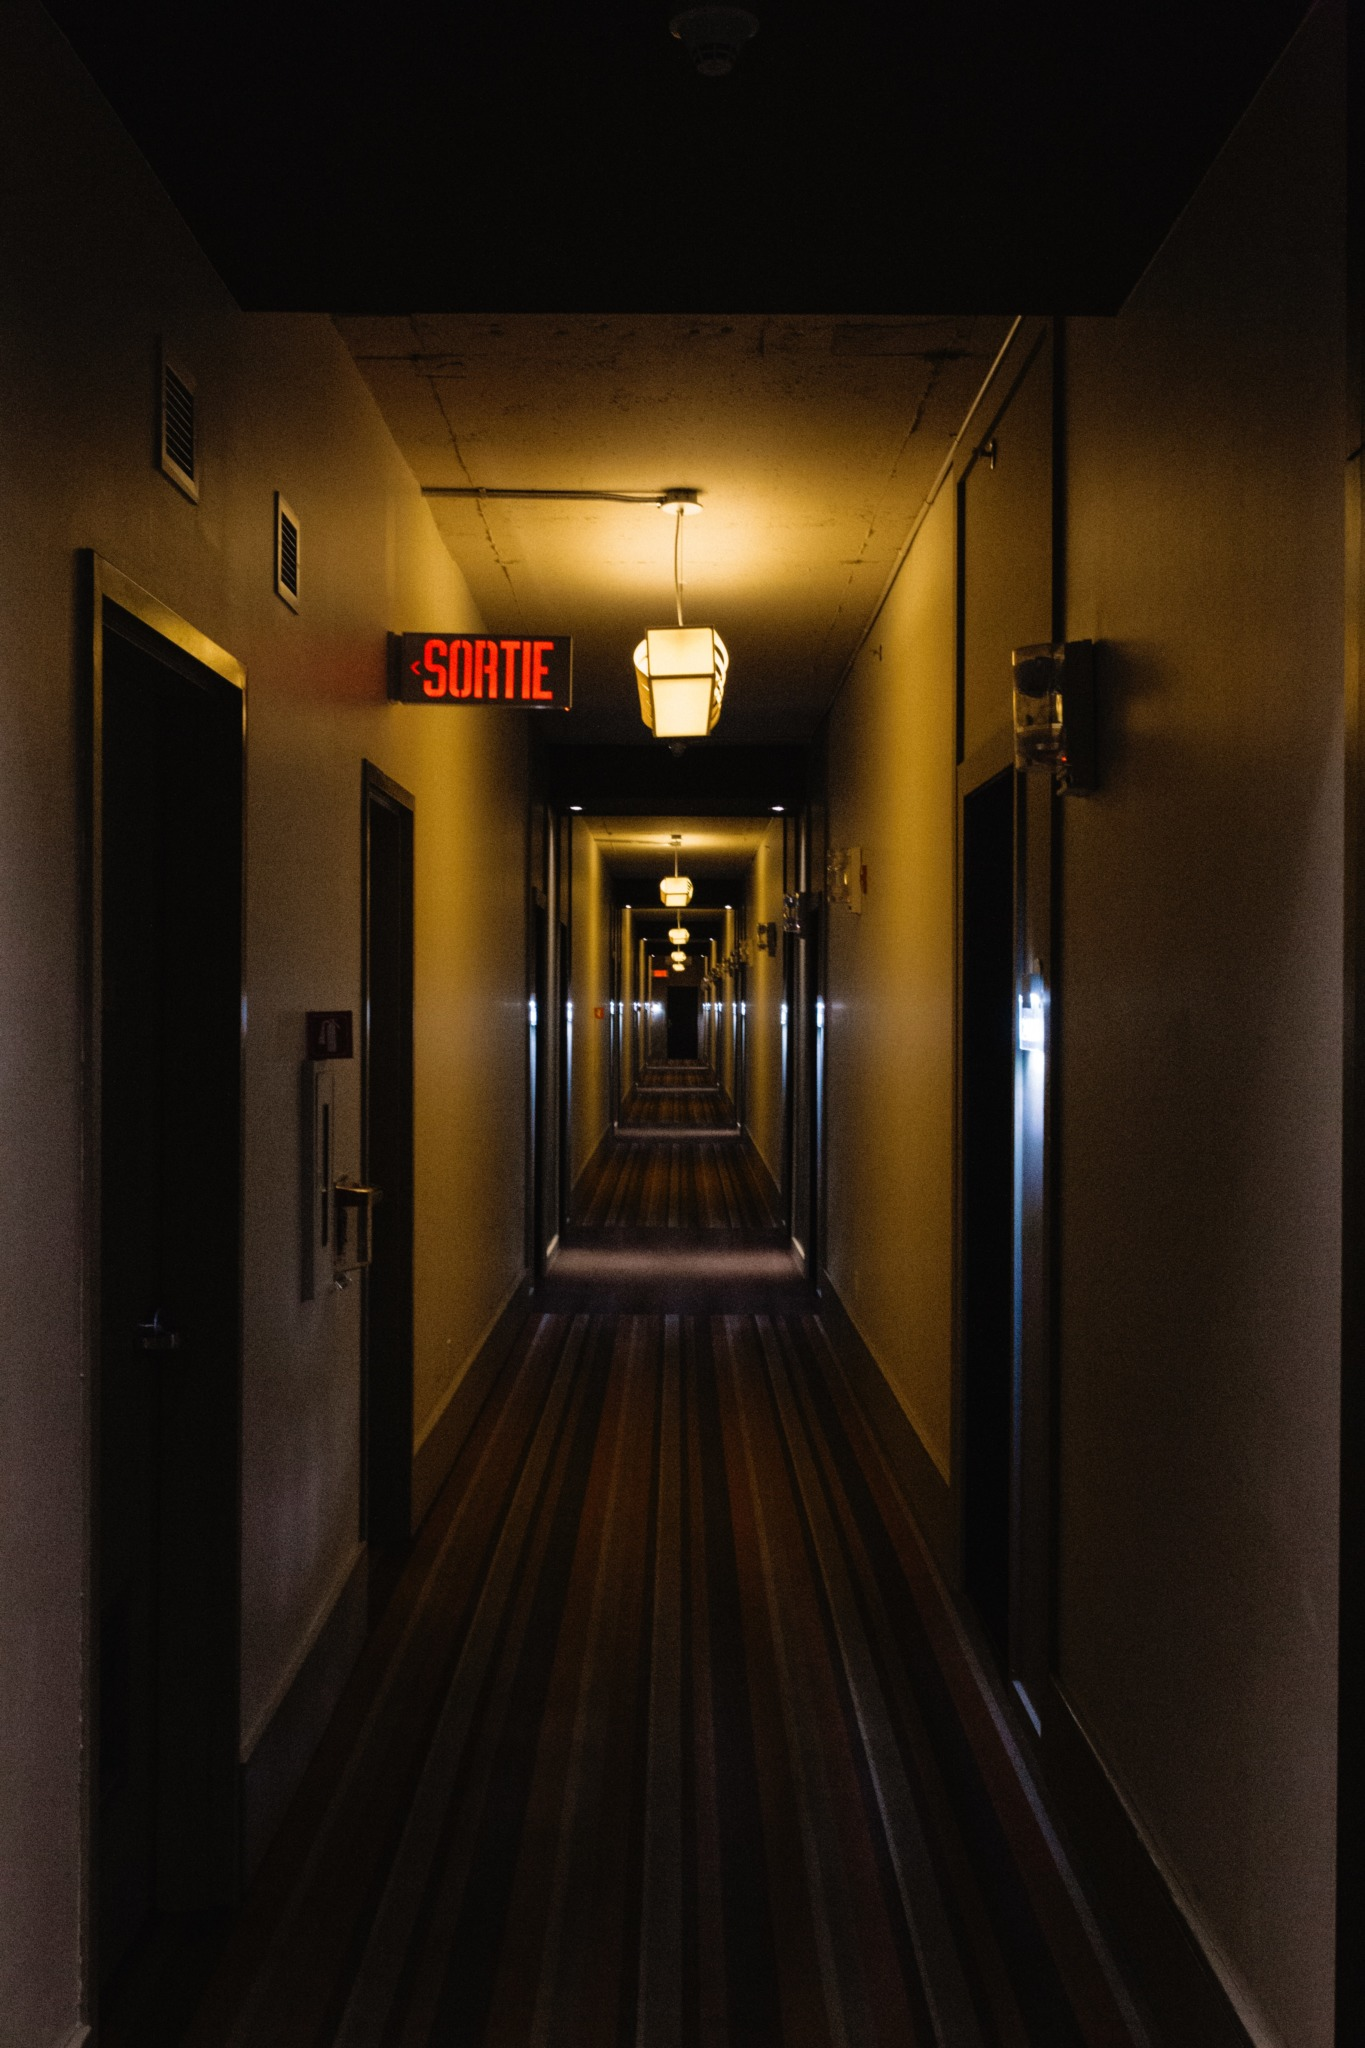 A gray and brown wooden hallway.